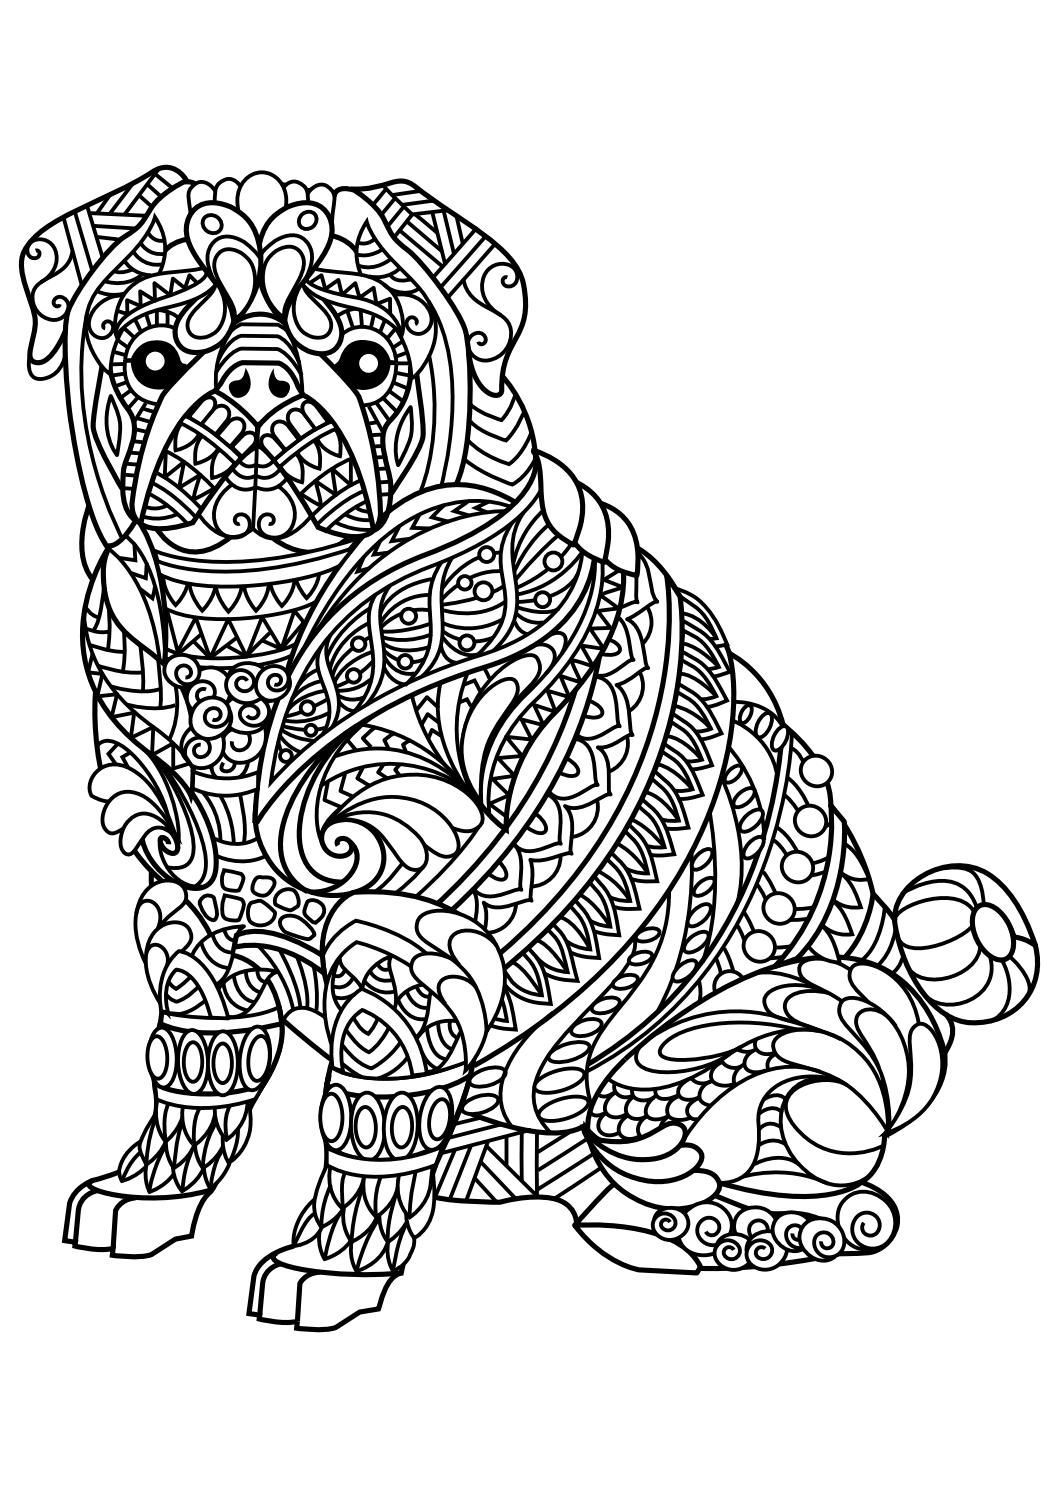 Animal Mandala Coloring Pages Horse Coloring Pages Dog Coloring